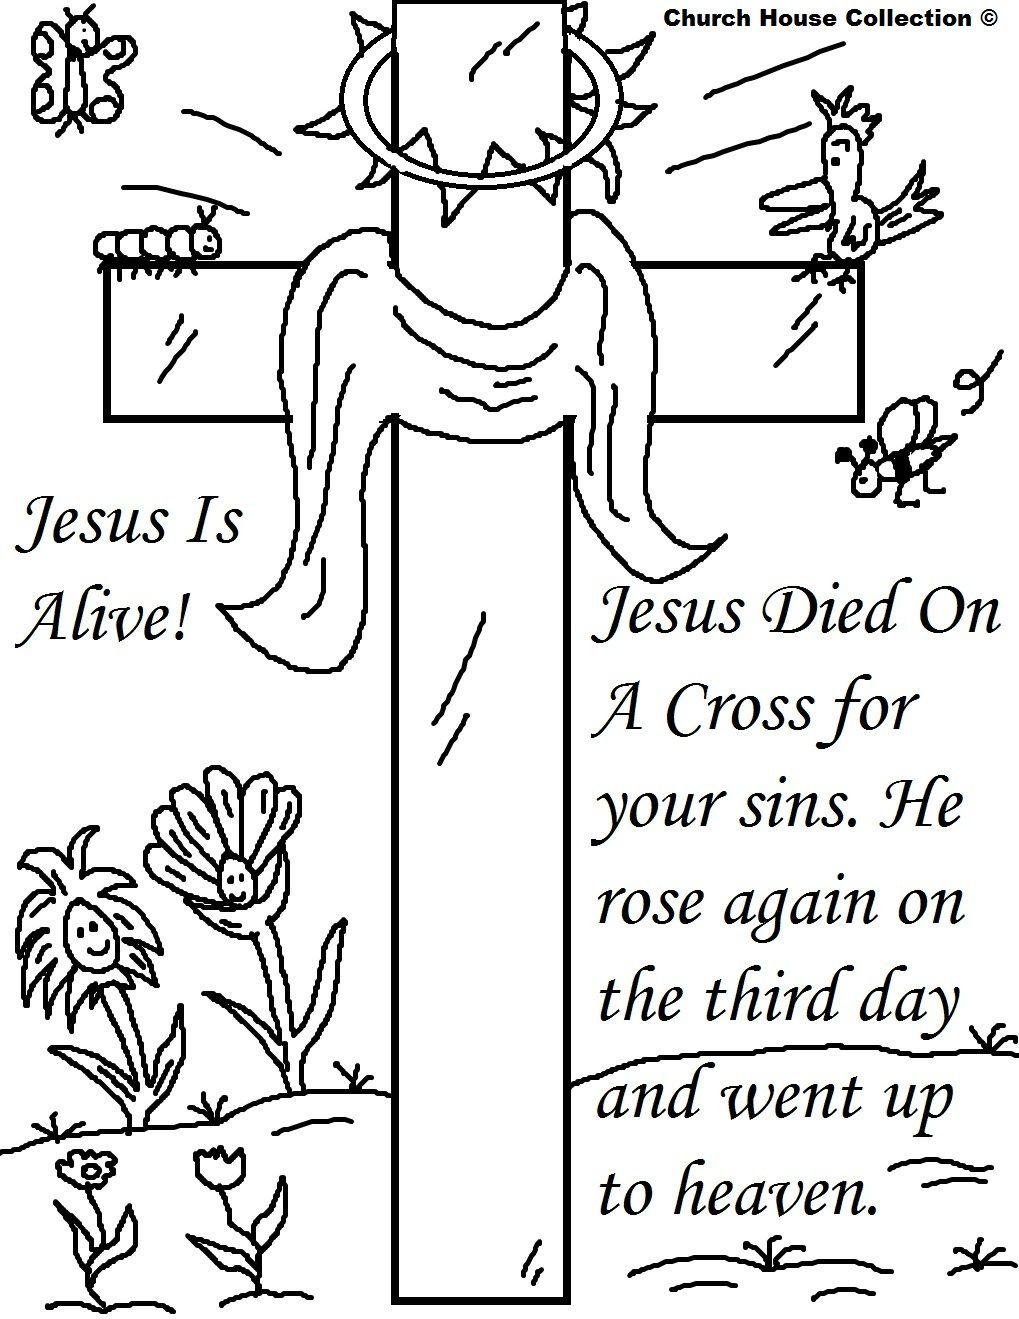 13 Religious Easter Coloring Pages | Sunday School! | Pinterest ...